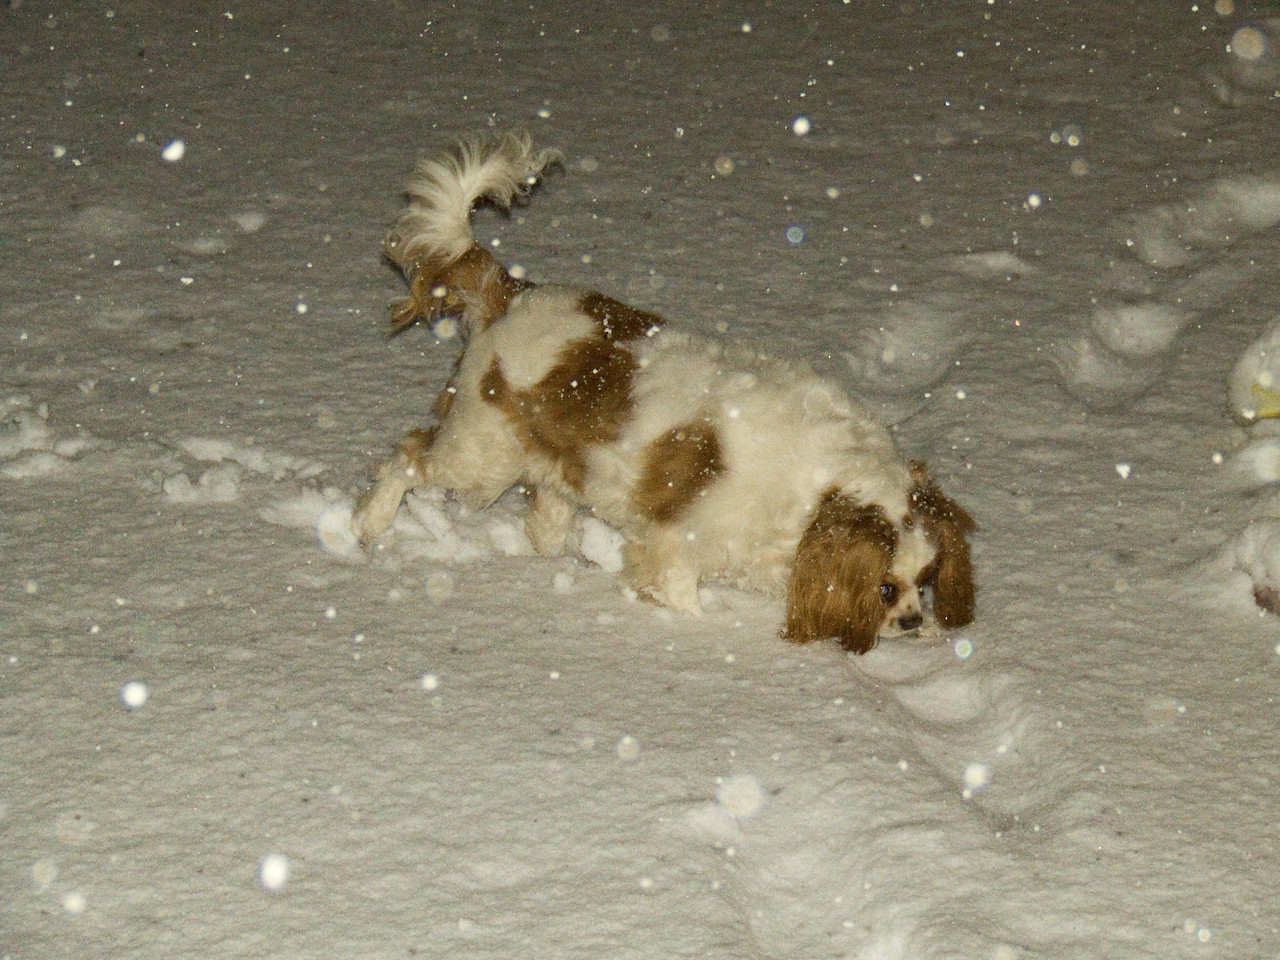 Any excuse to get out in the snow